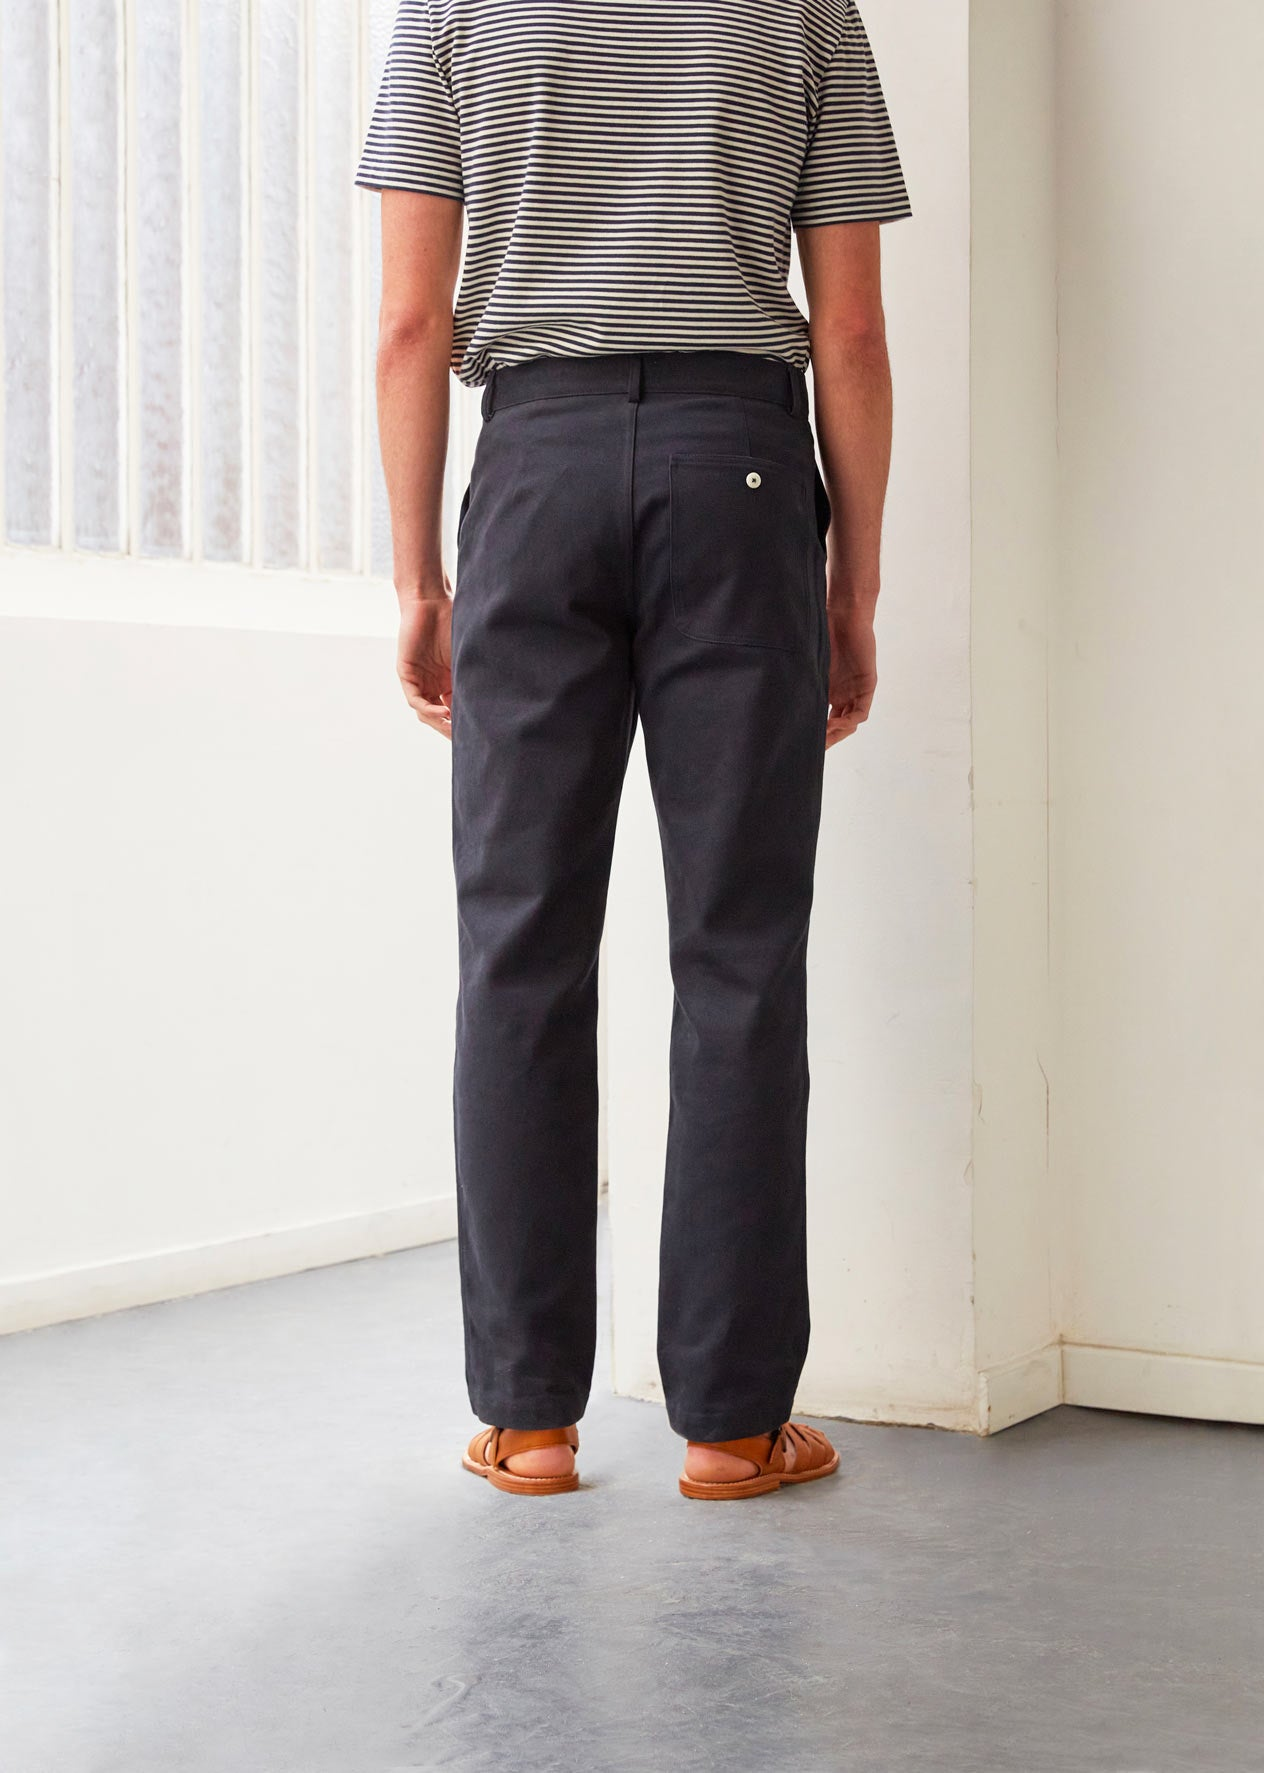 Painter's trousers - Organic cotton twill - Night blue - De Bonne Facture